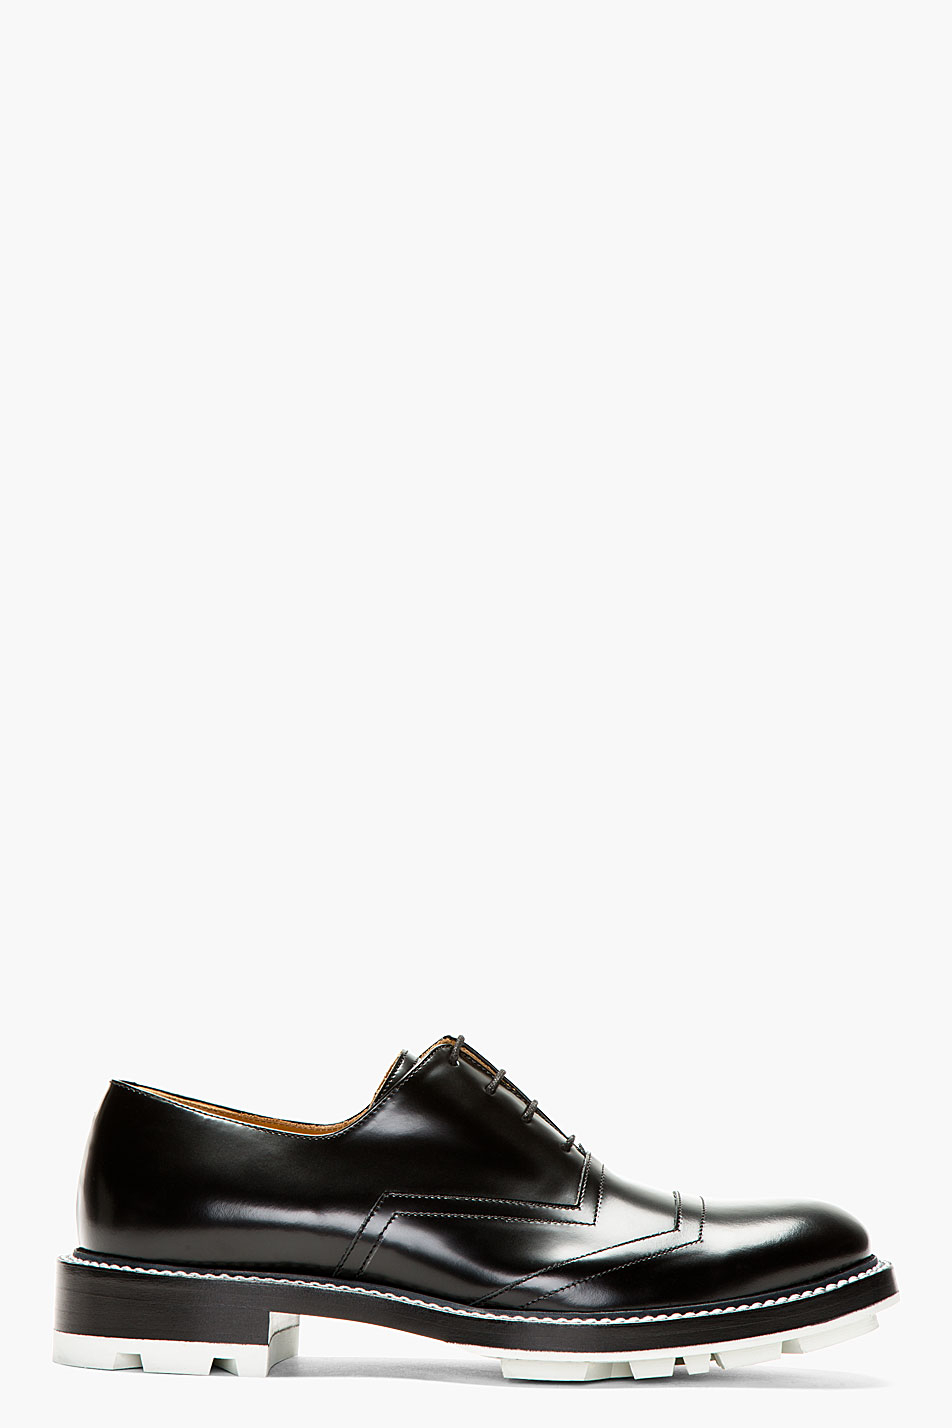 Jil Sander Black Buff Leather Lace Up Shoes In Black For Men Lyst